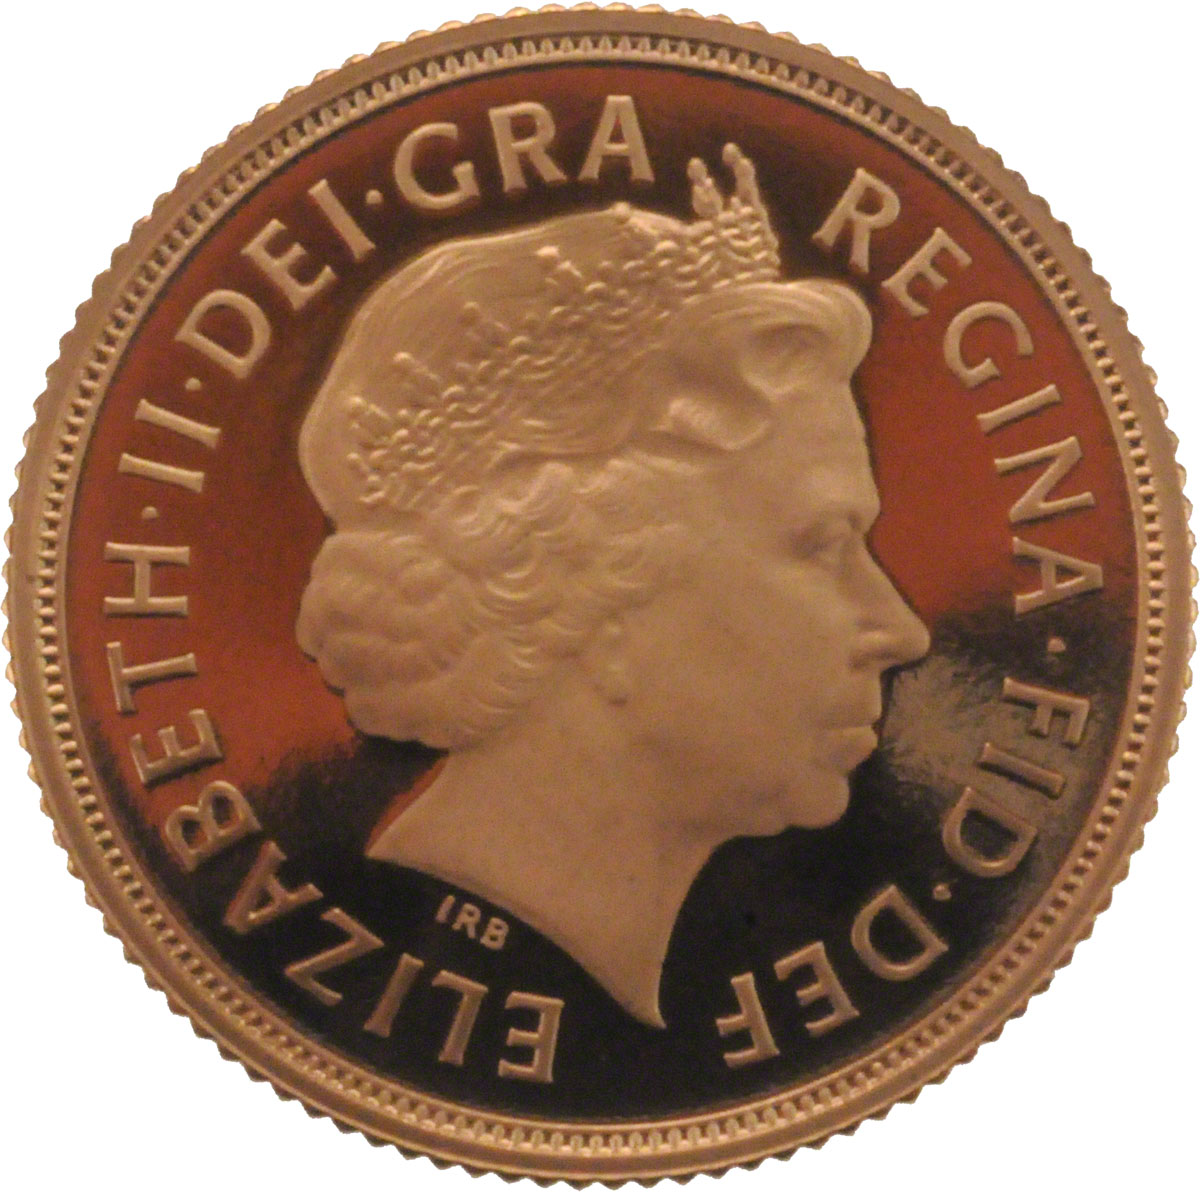 Obverse Face of a 2012-Gold-Sovereign